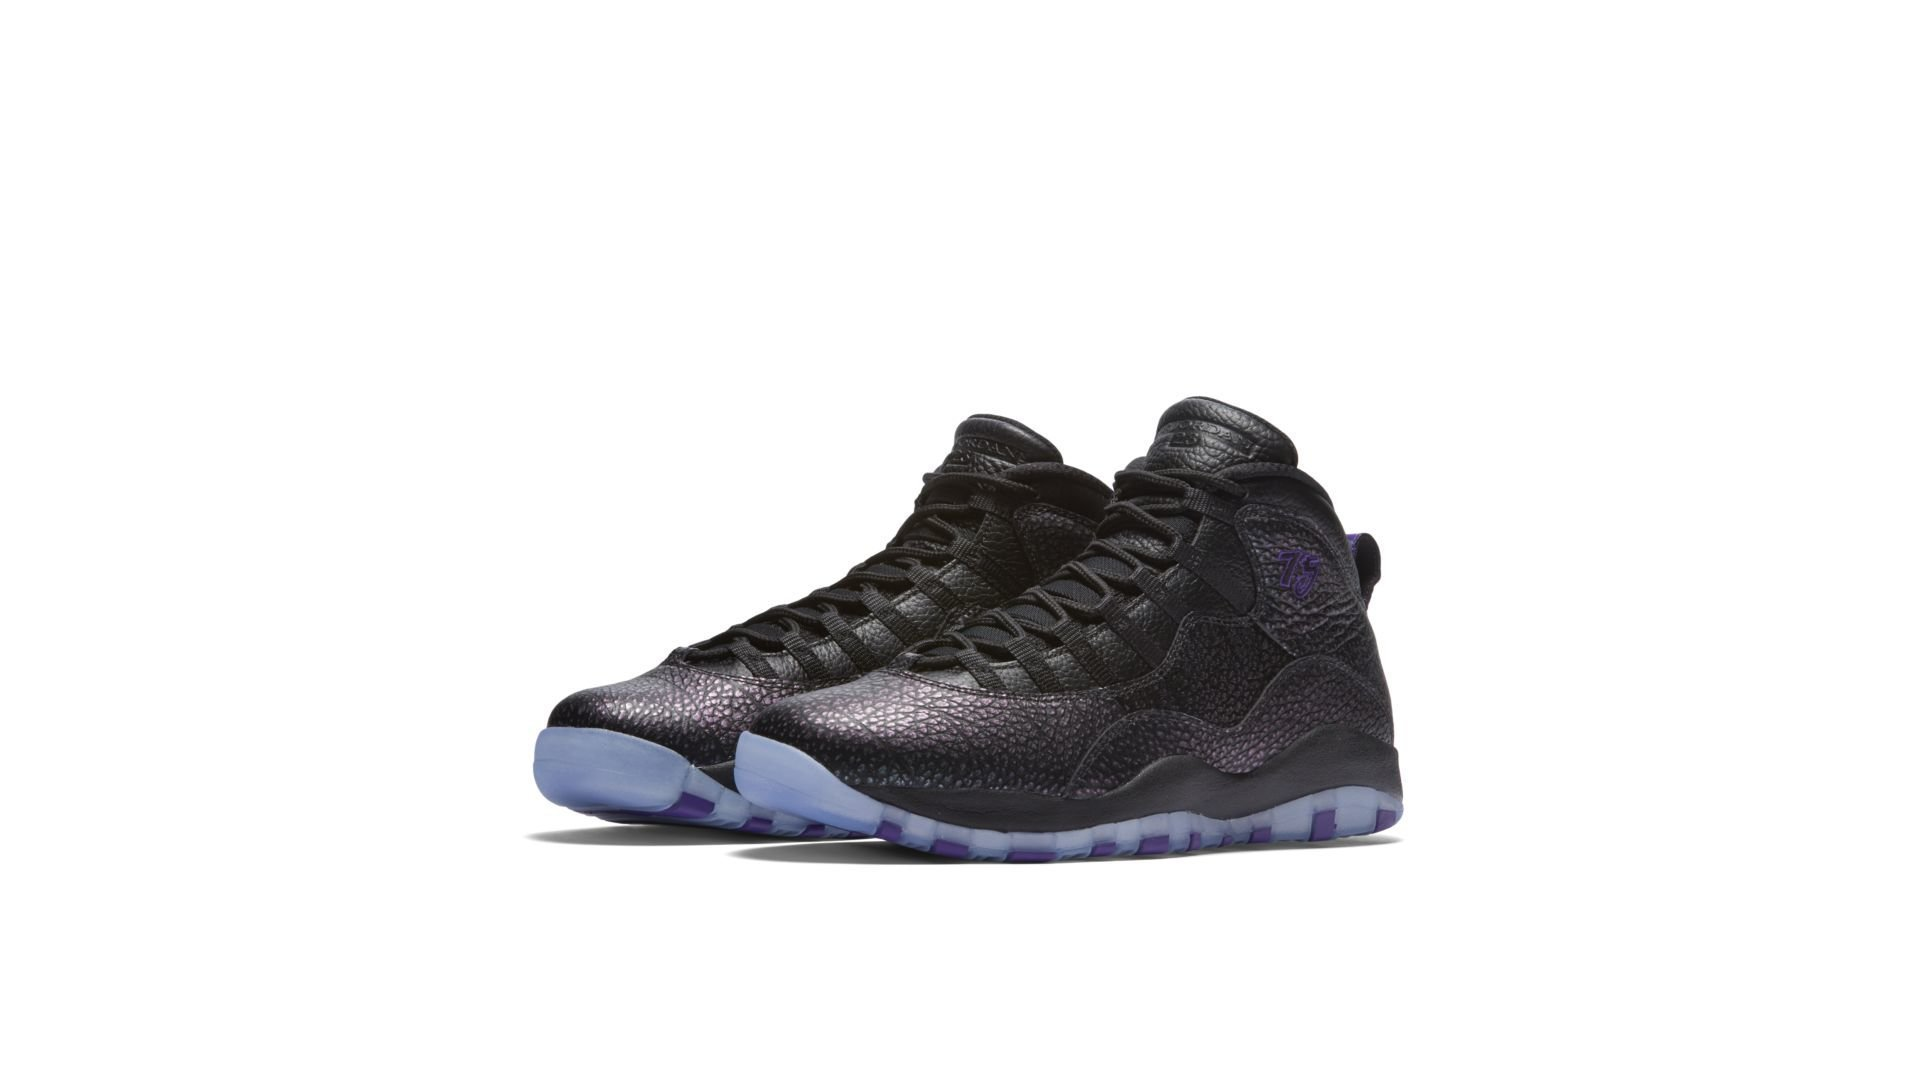 Jordan 10 Retro Paris (310805-018)